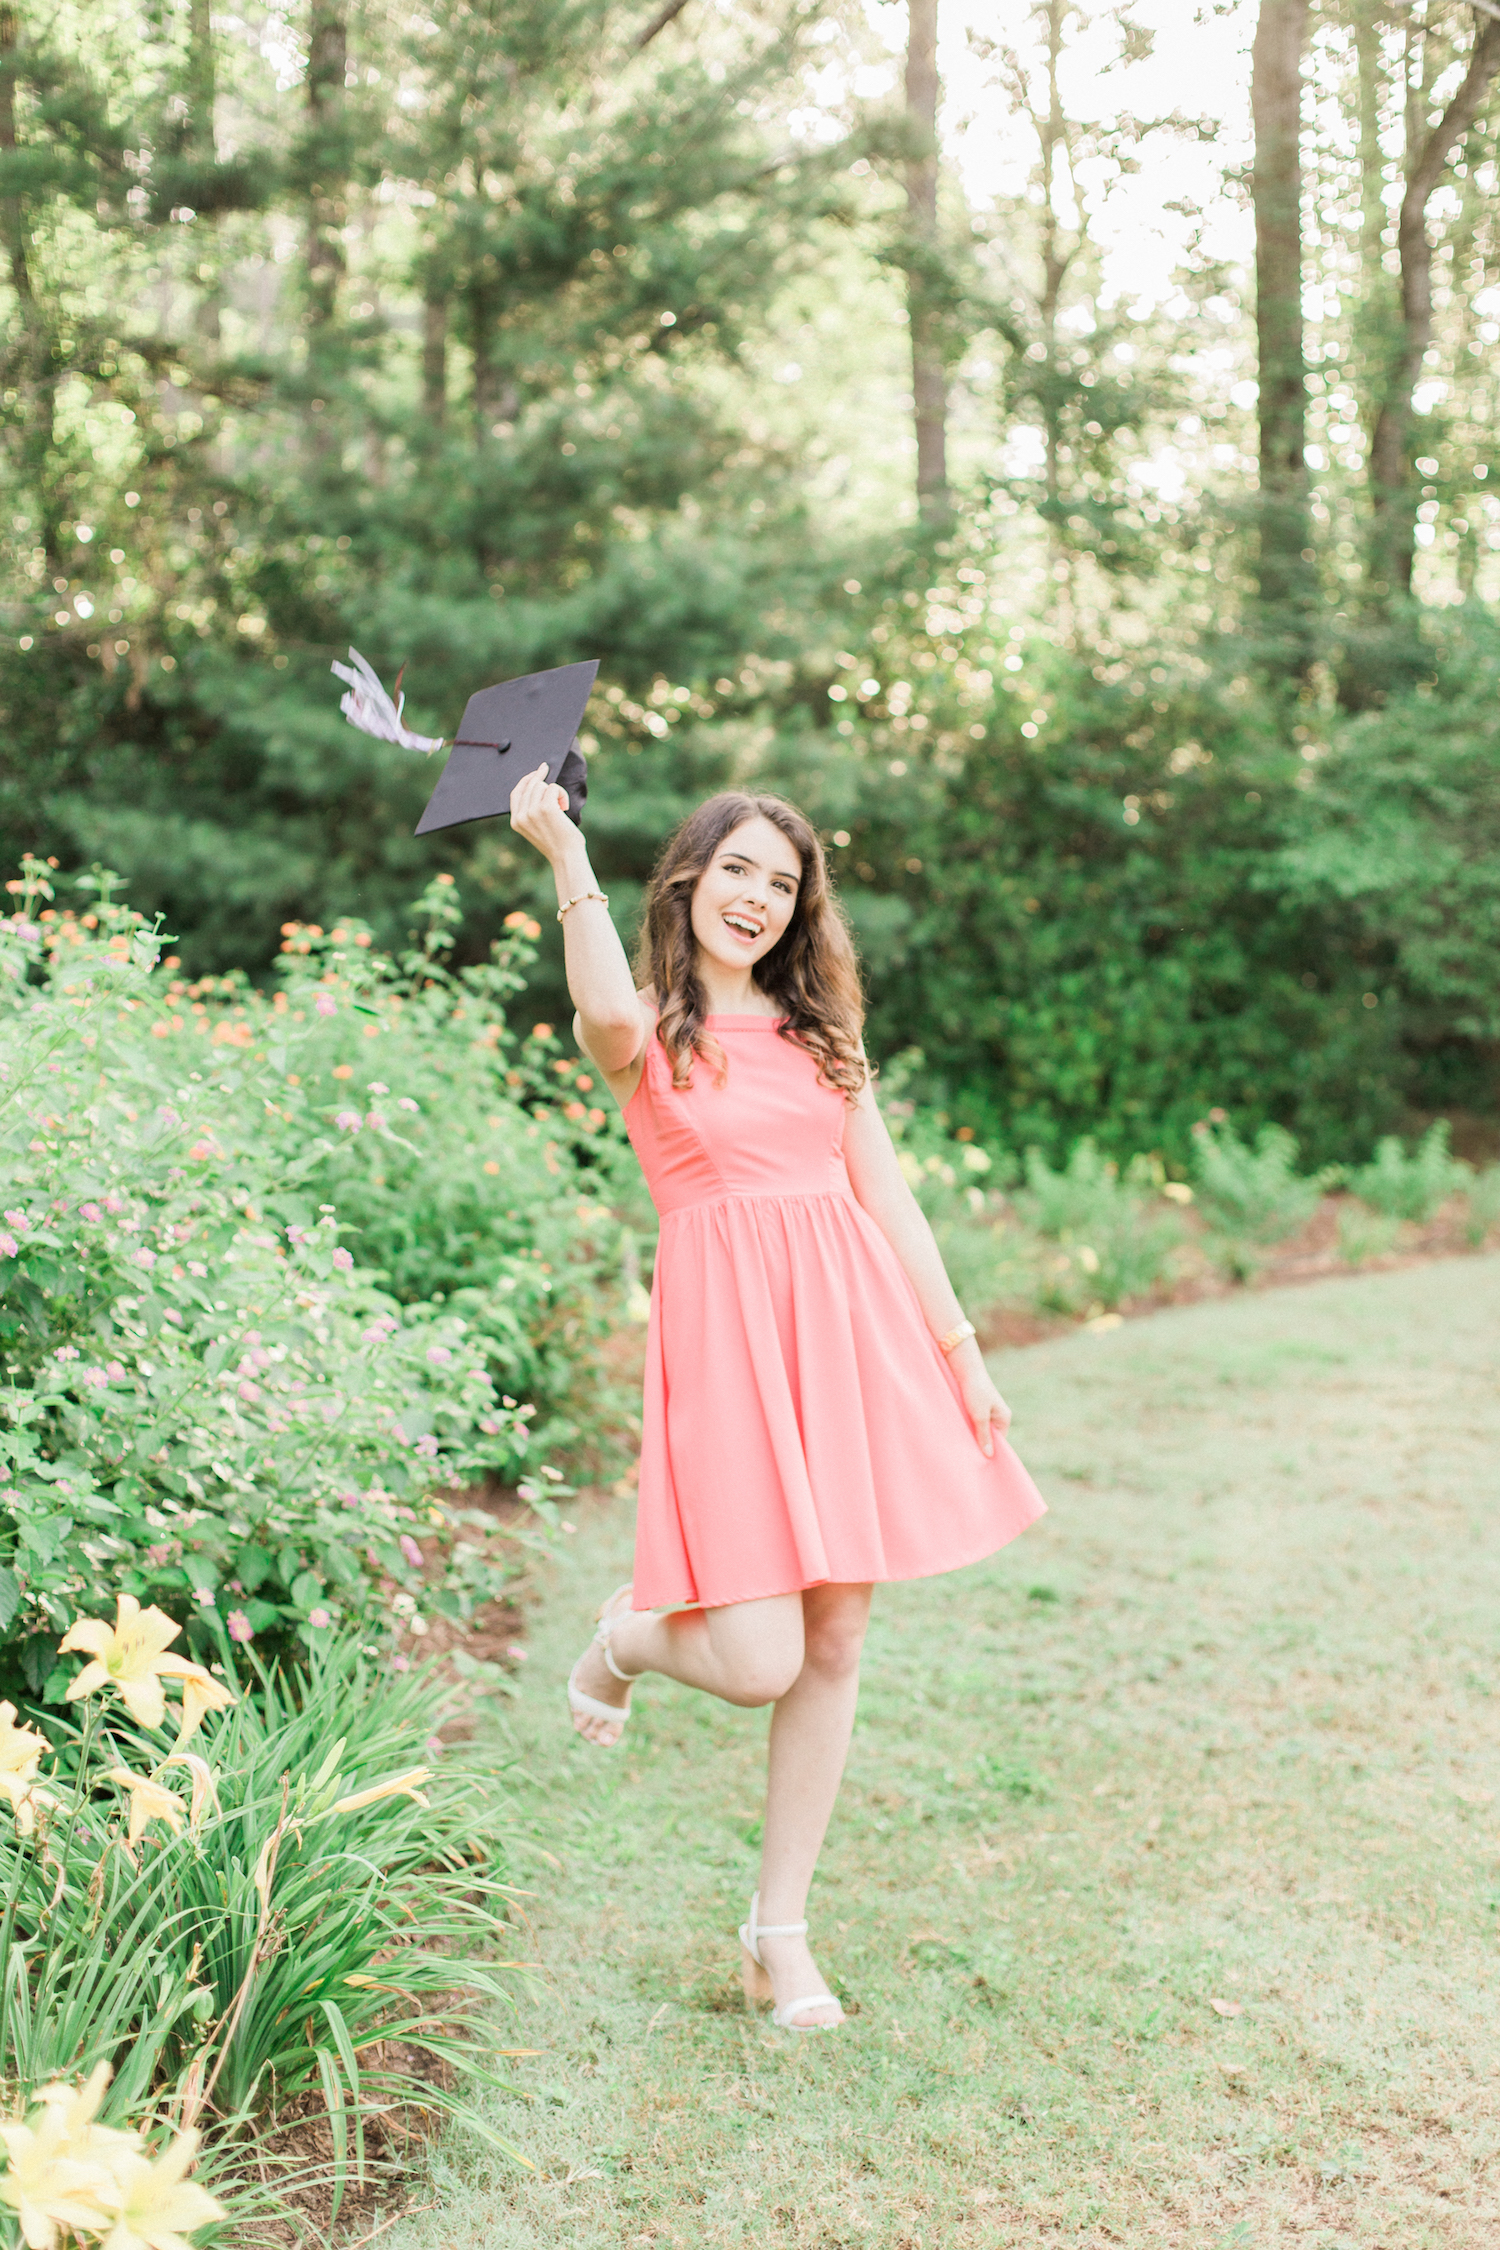 Summer time high school senior session at Vine Mansion Park by Kesia Marie Photography. Featuring feminine, garden details. Senior photos throwing graduation cap.